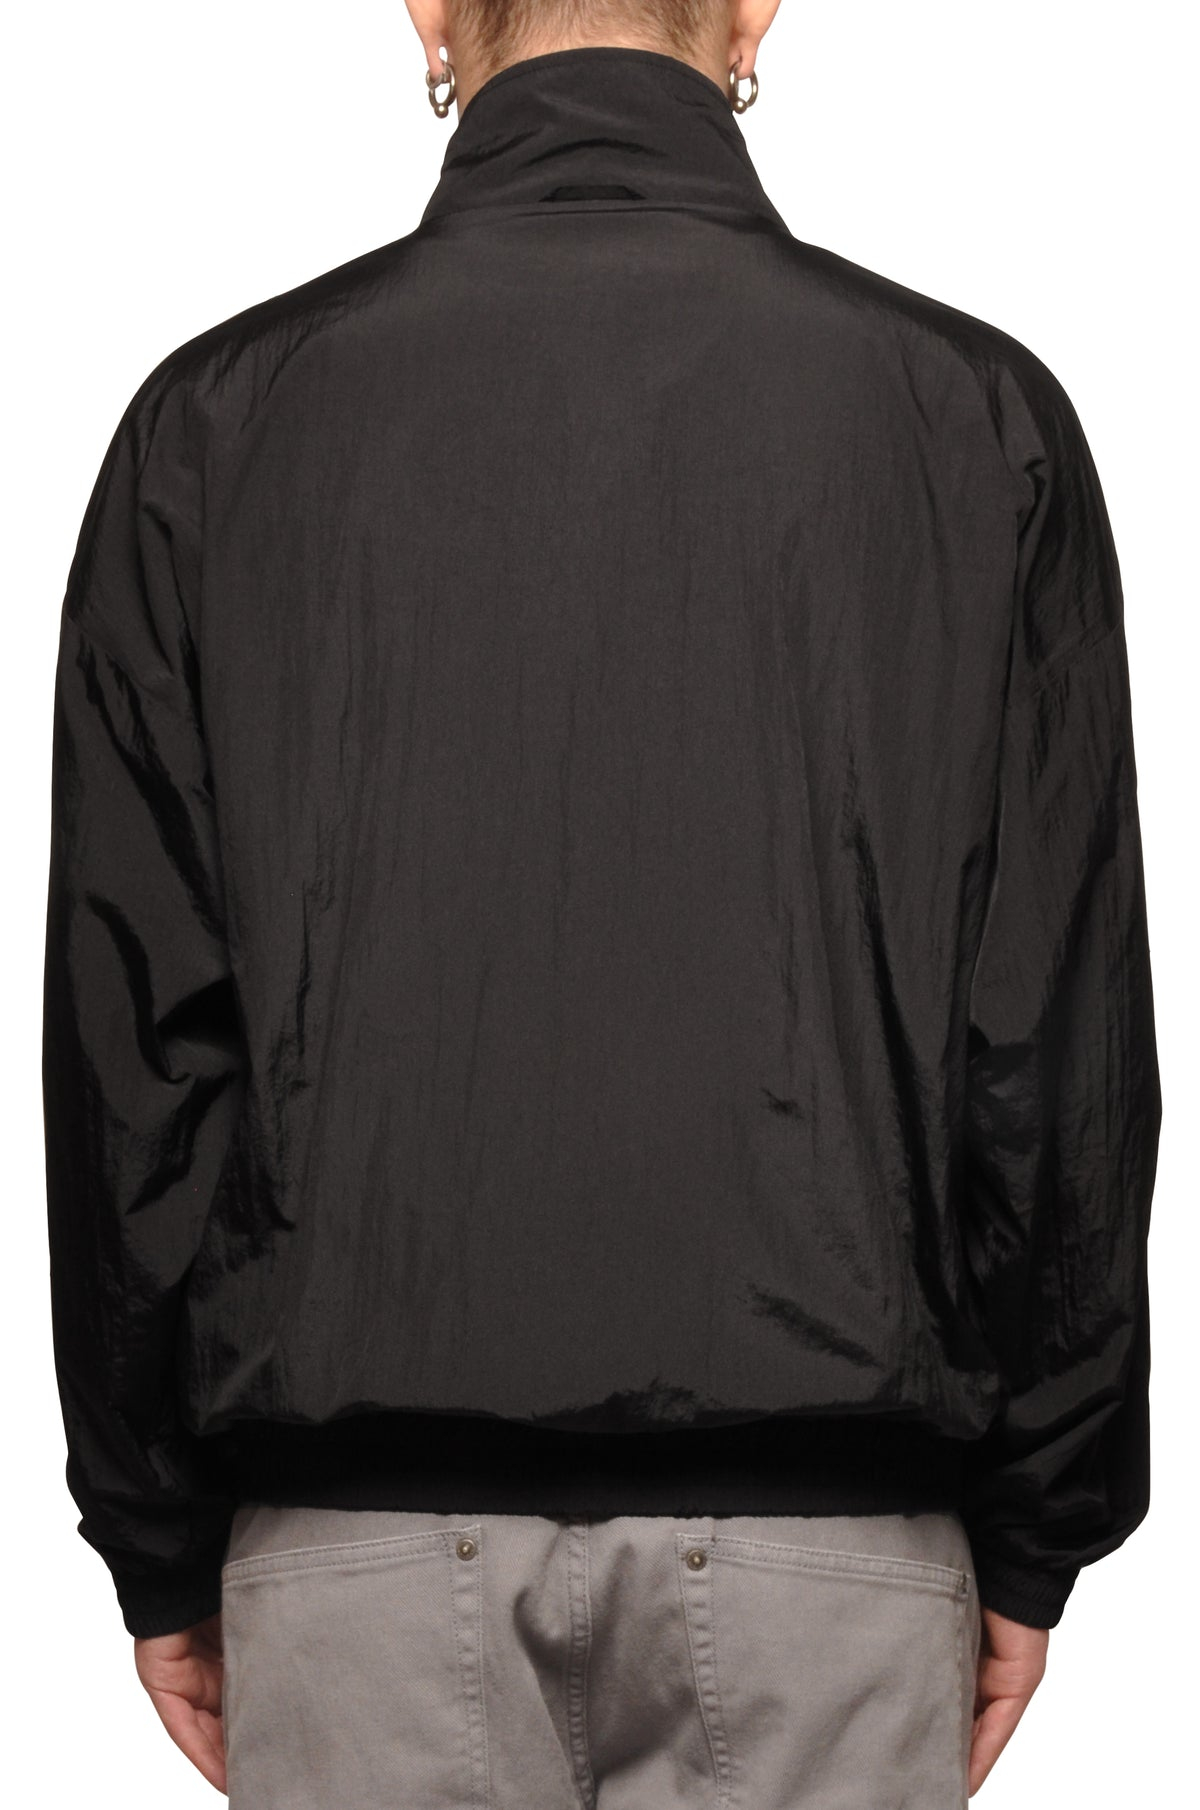 032c COSMIC WORKSHOP Reversible Blouson Black - 032c